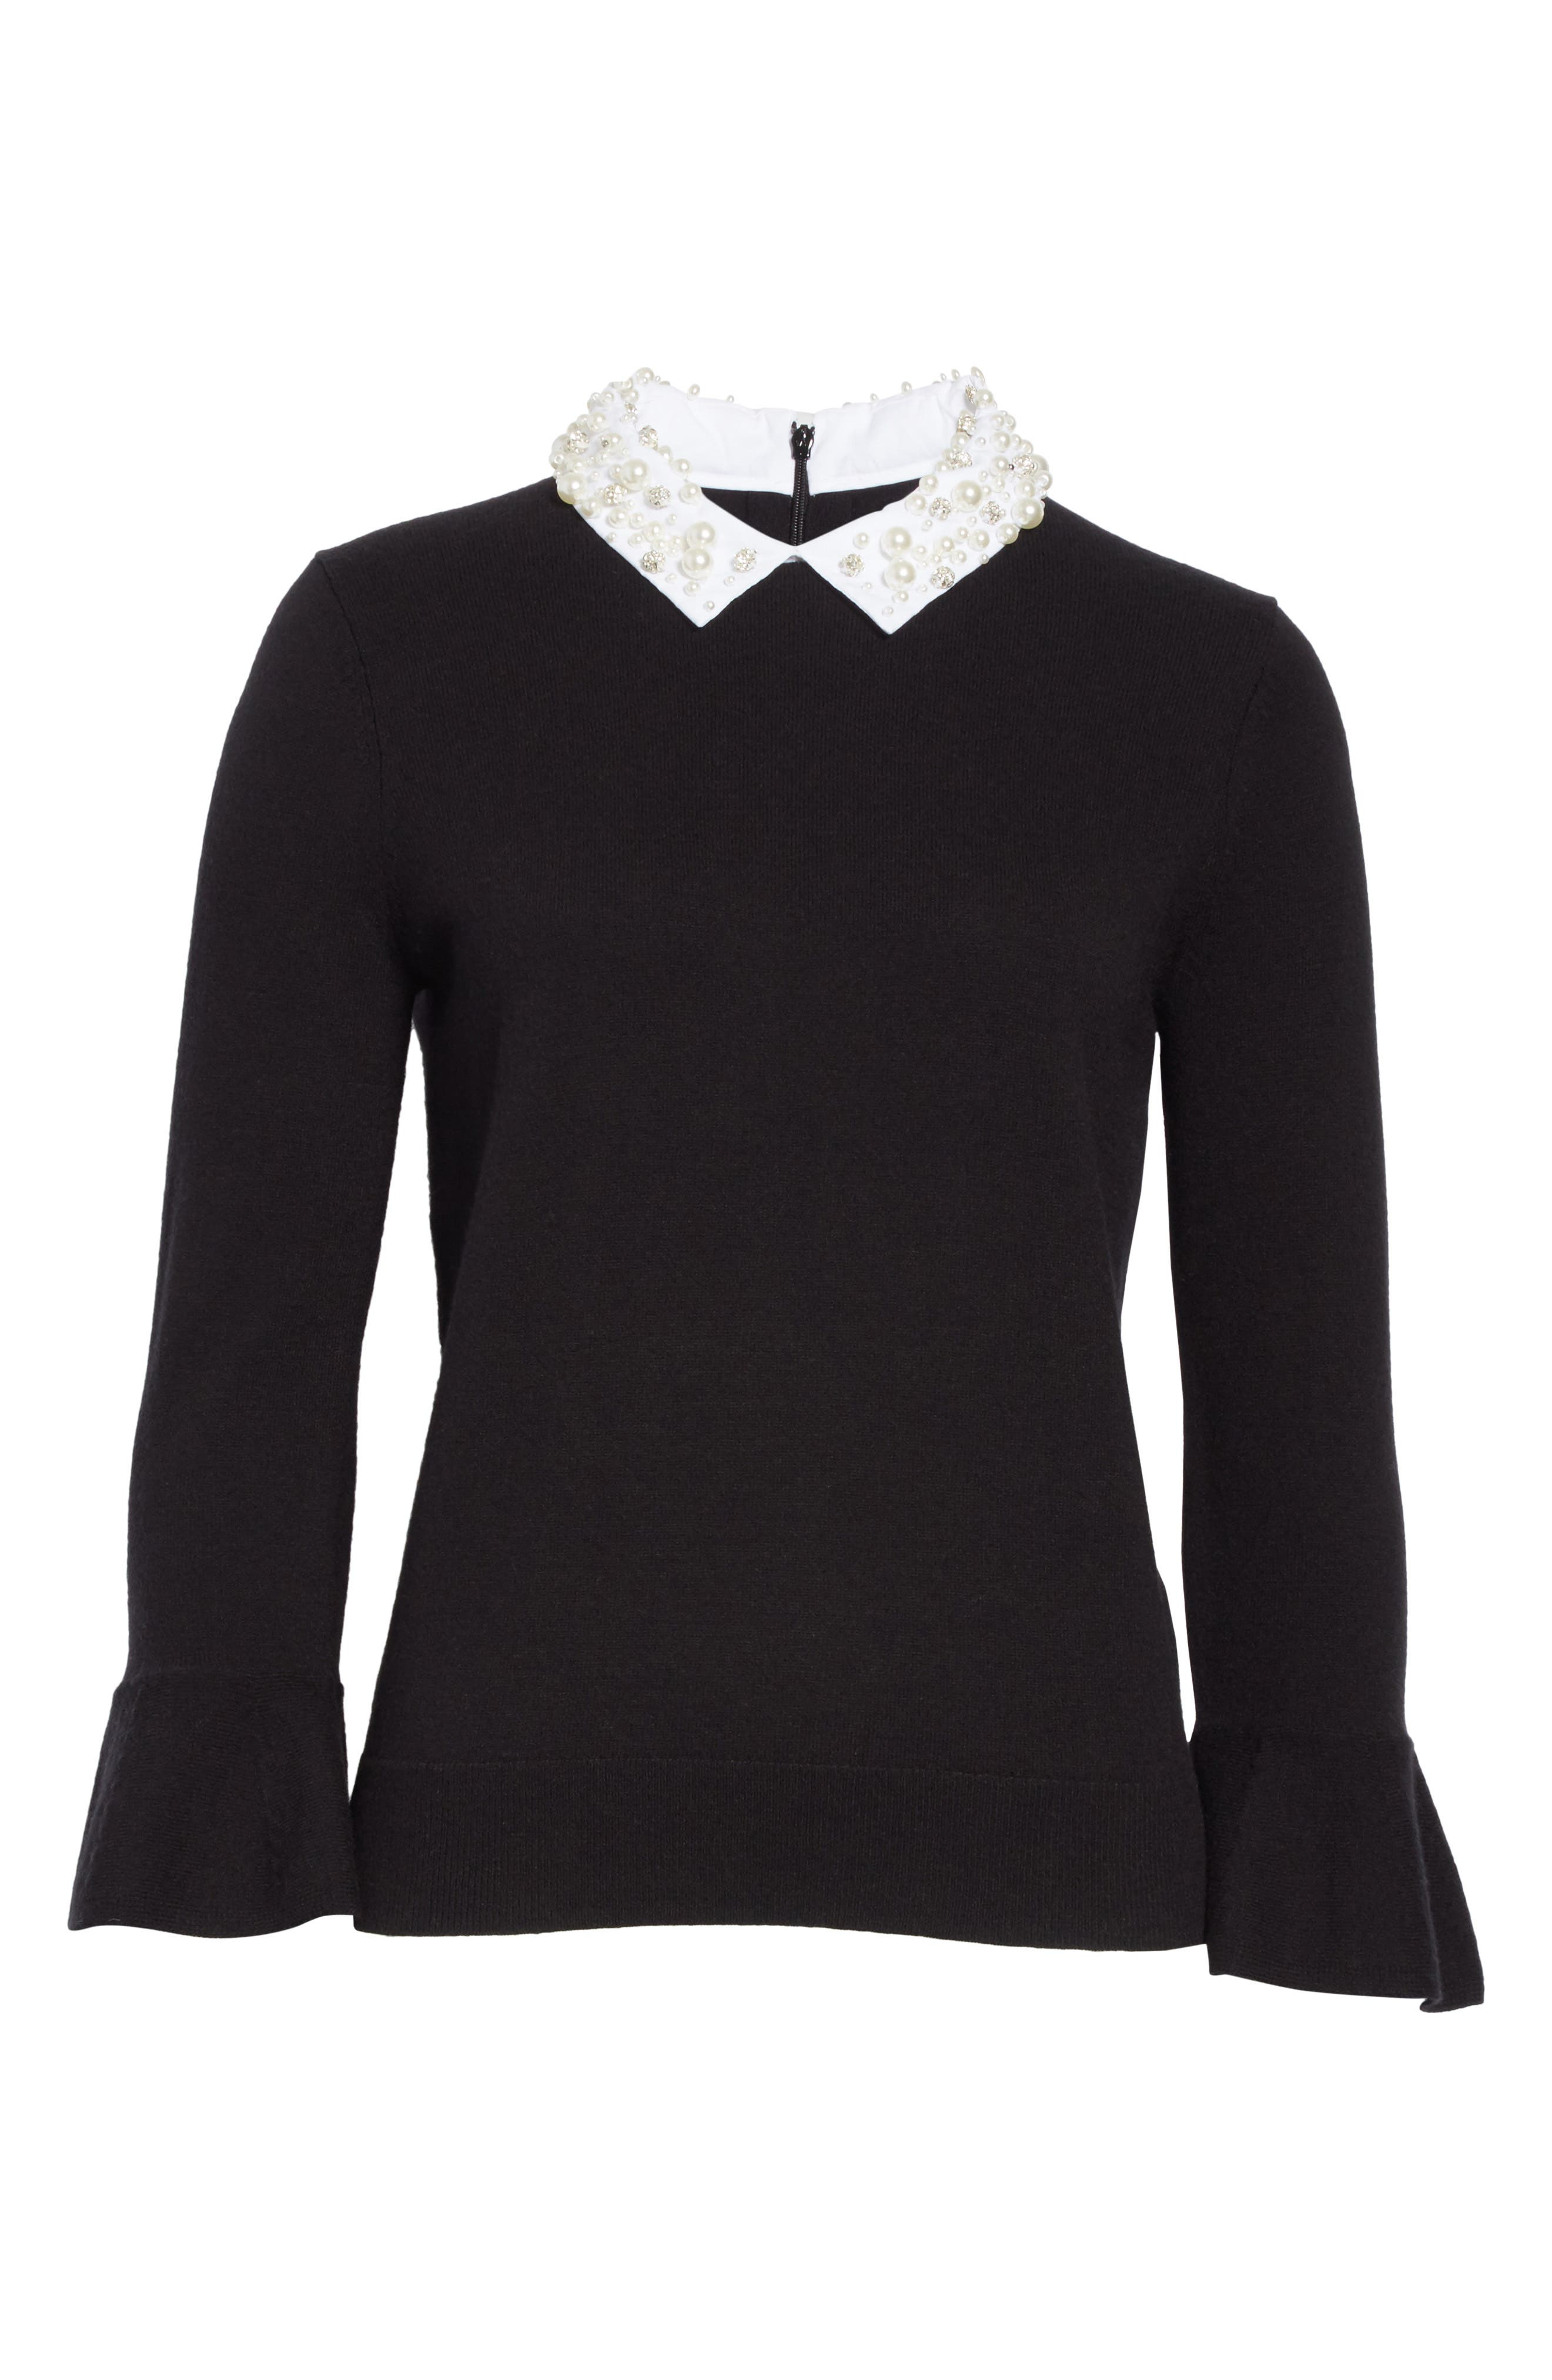 embellished collar sweater,                             Alternate thumbnail 6, color,                             001